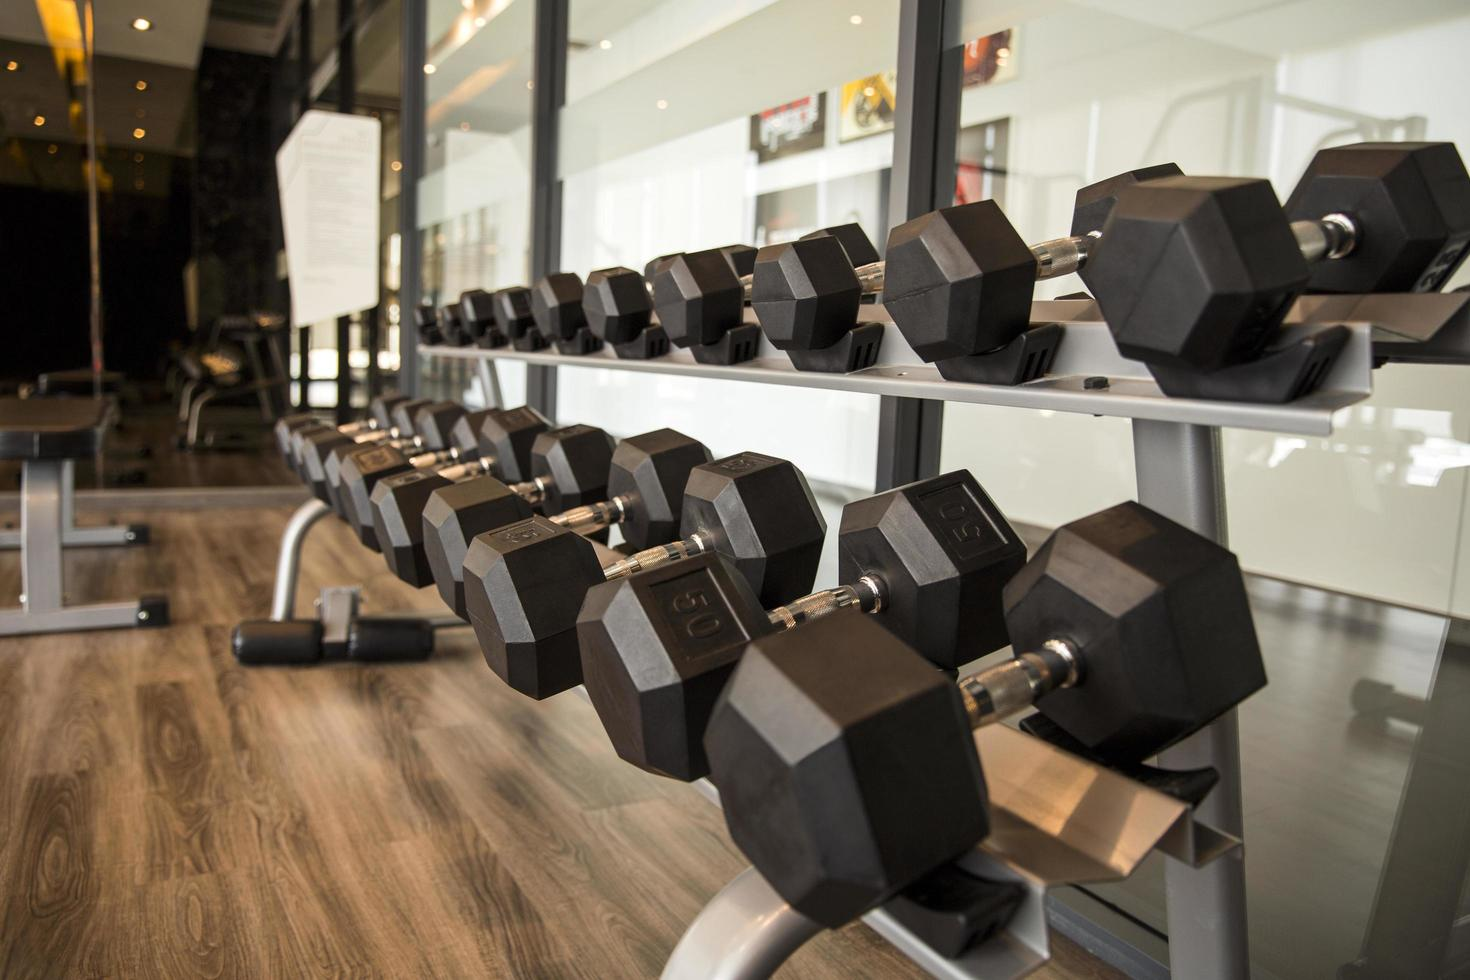 Dumbbells in a gymn photo